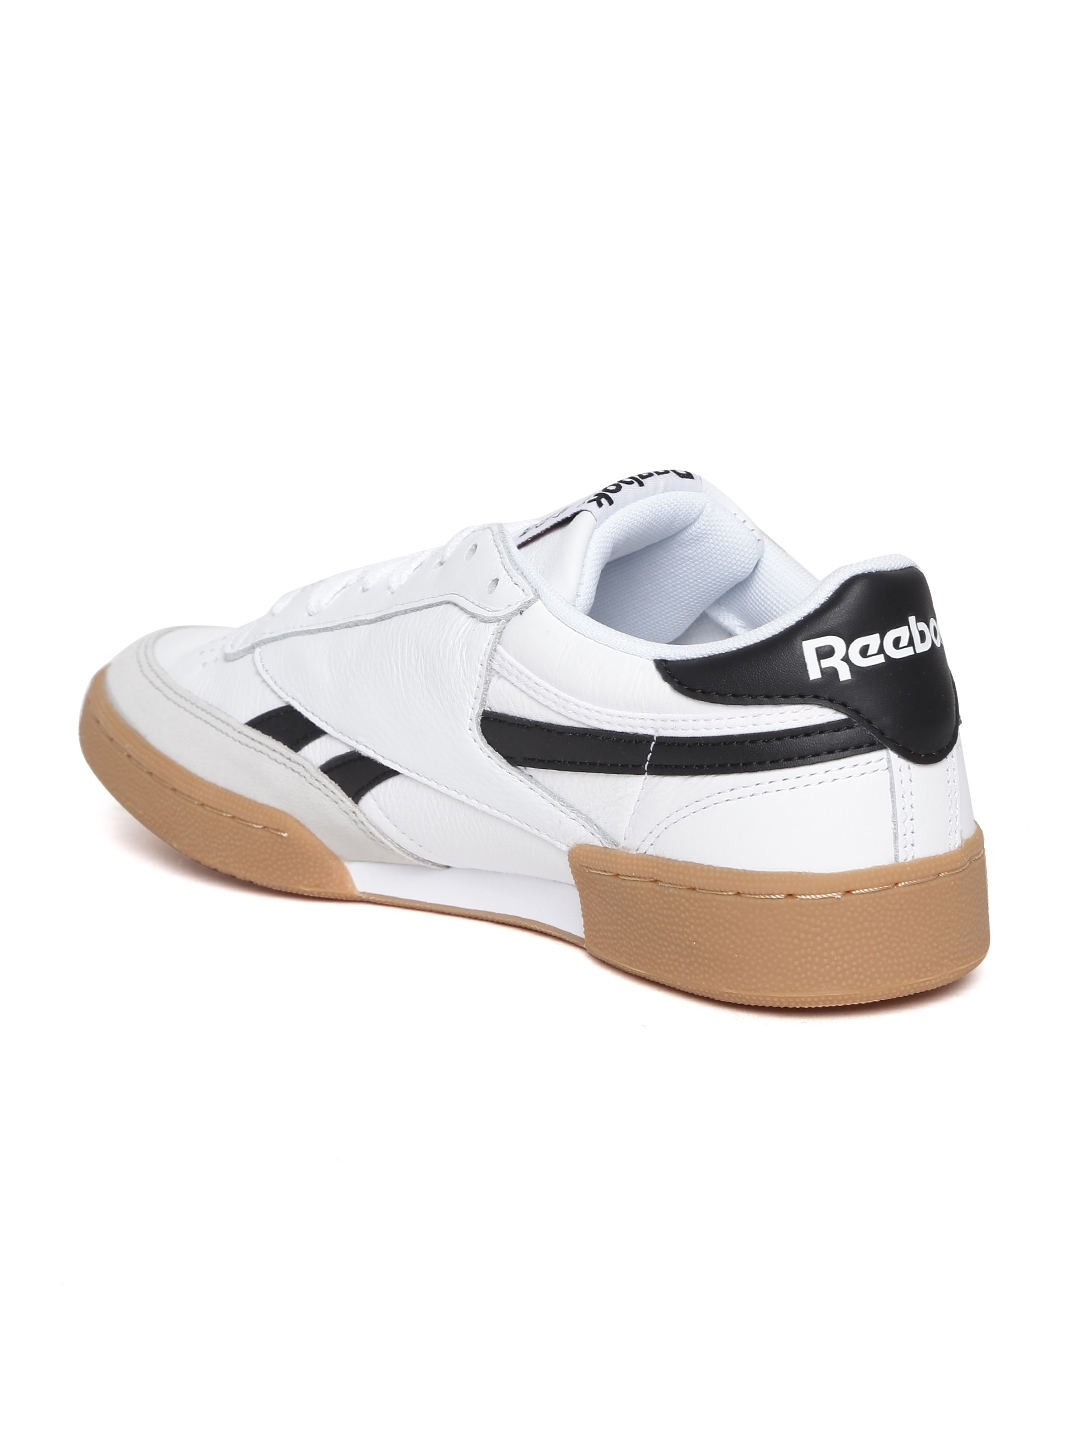 d2ad12ae64c3 Reebok Classic Men White REVENGE PLUS GUM Leather Sneakers. Rs. 7999Additional  ...